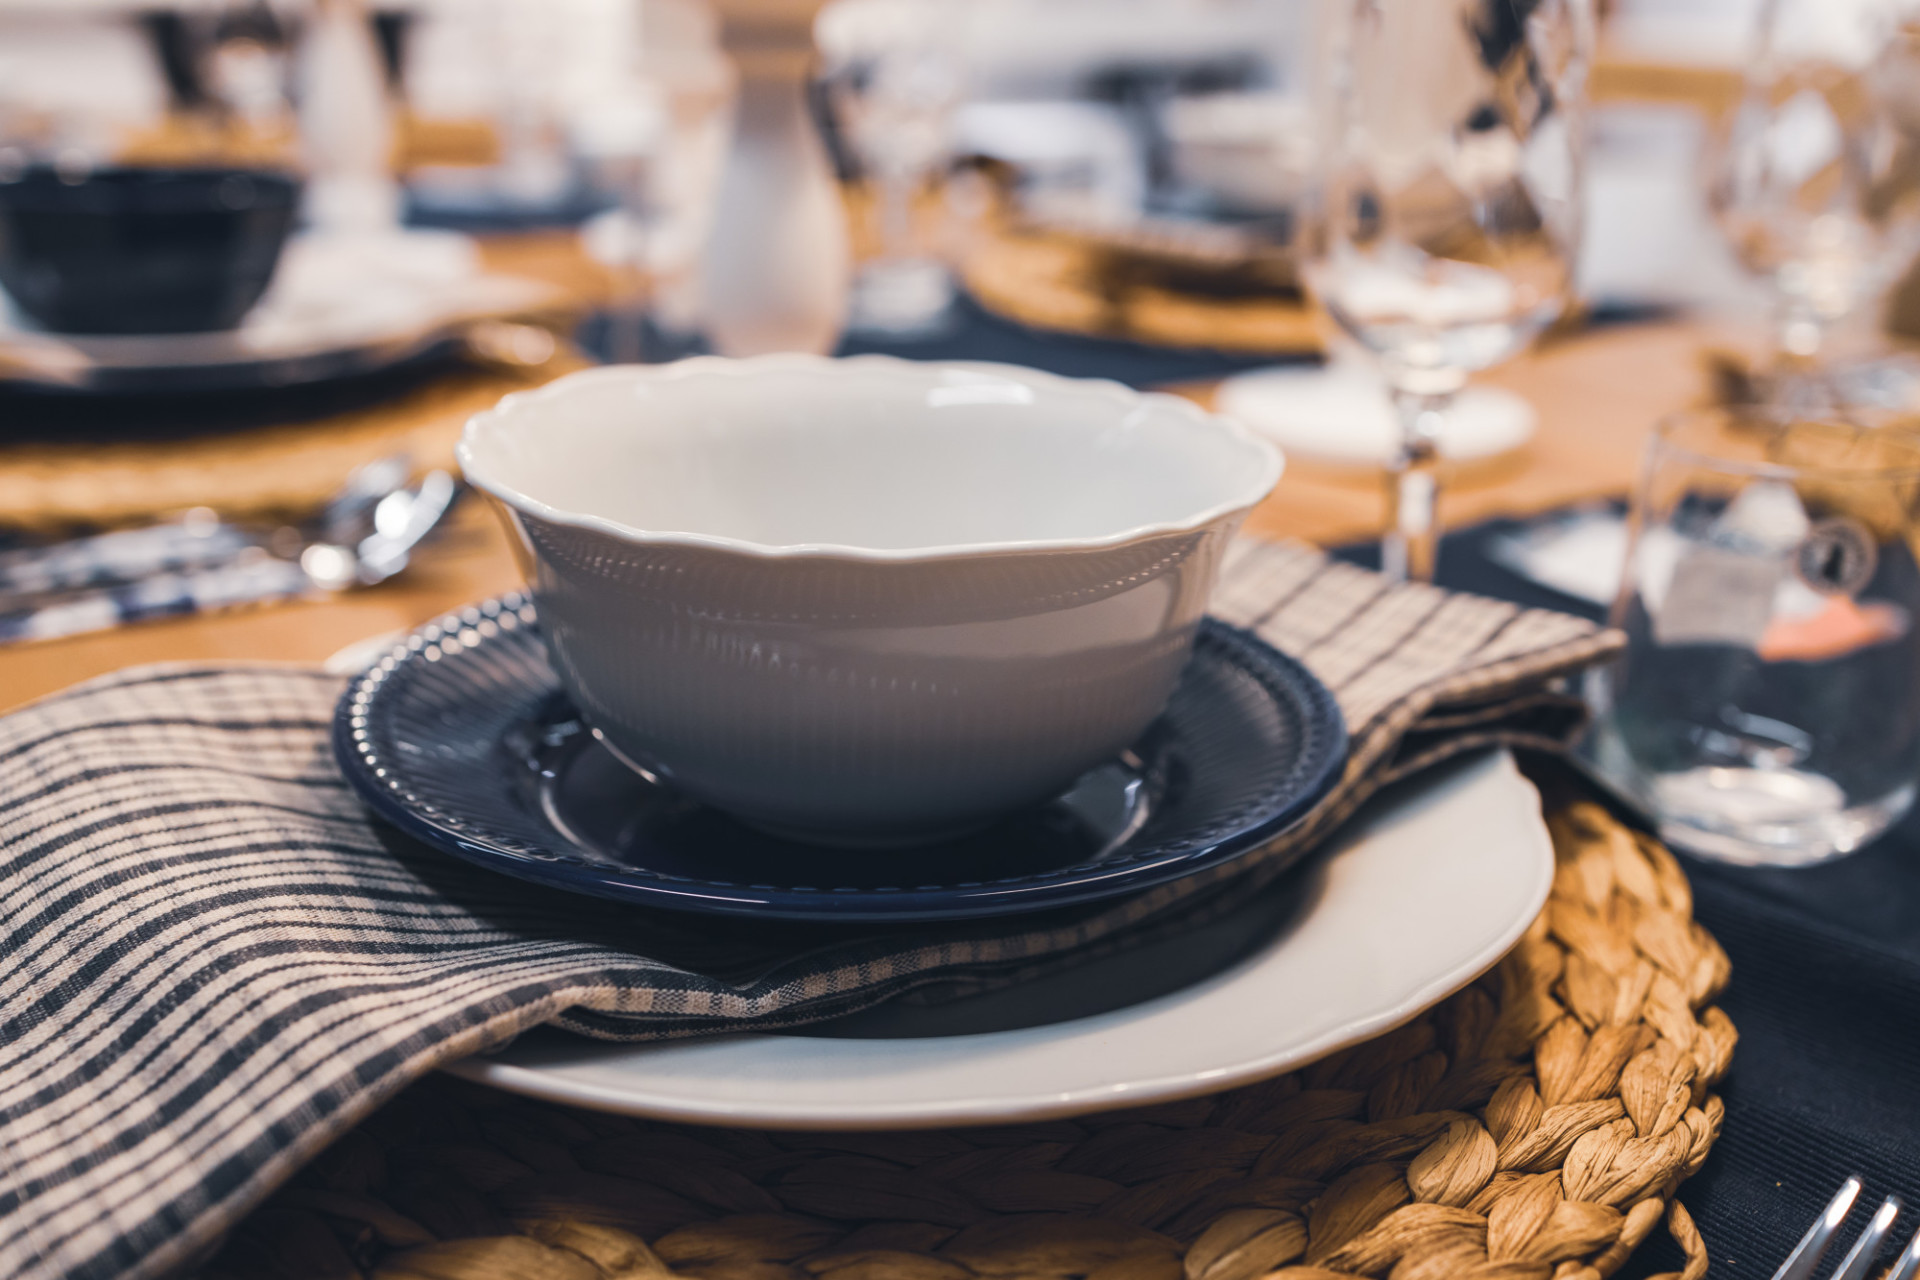 Table set with soup bowl